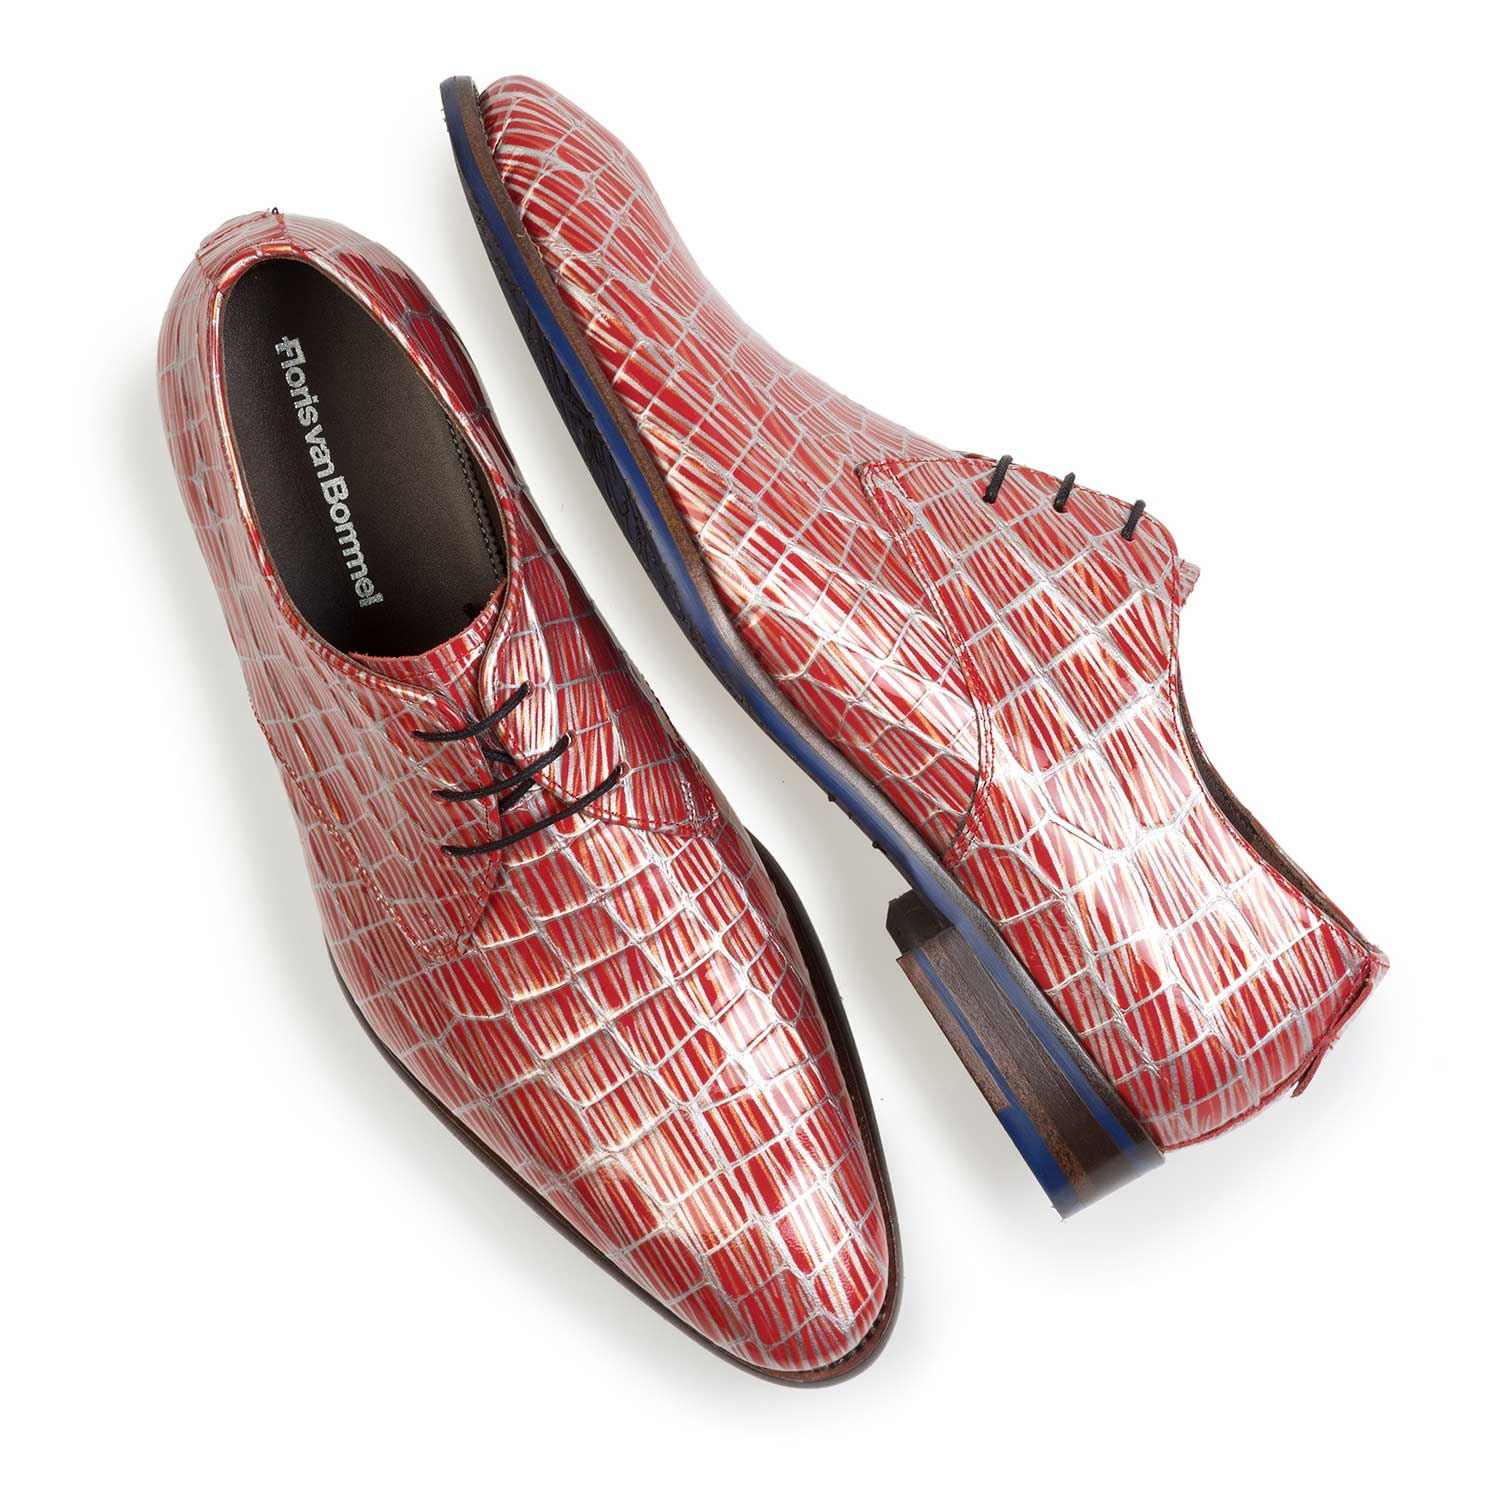 14104/02 - Red patent leather lace shoe with print